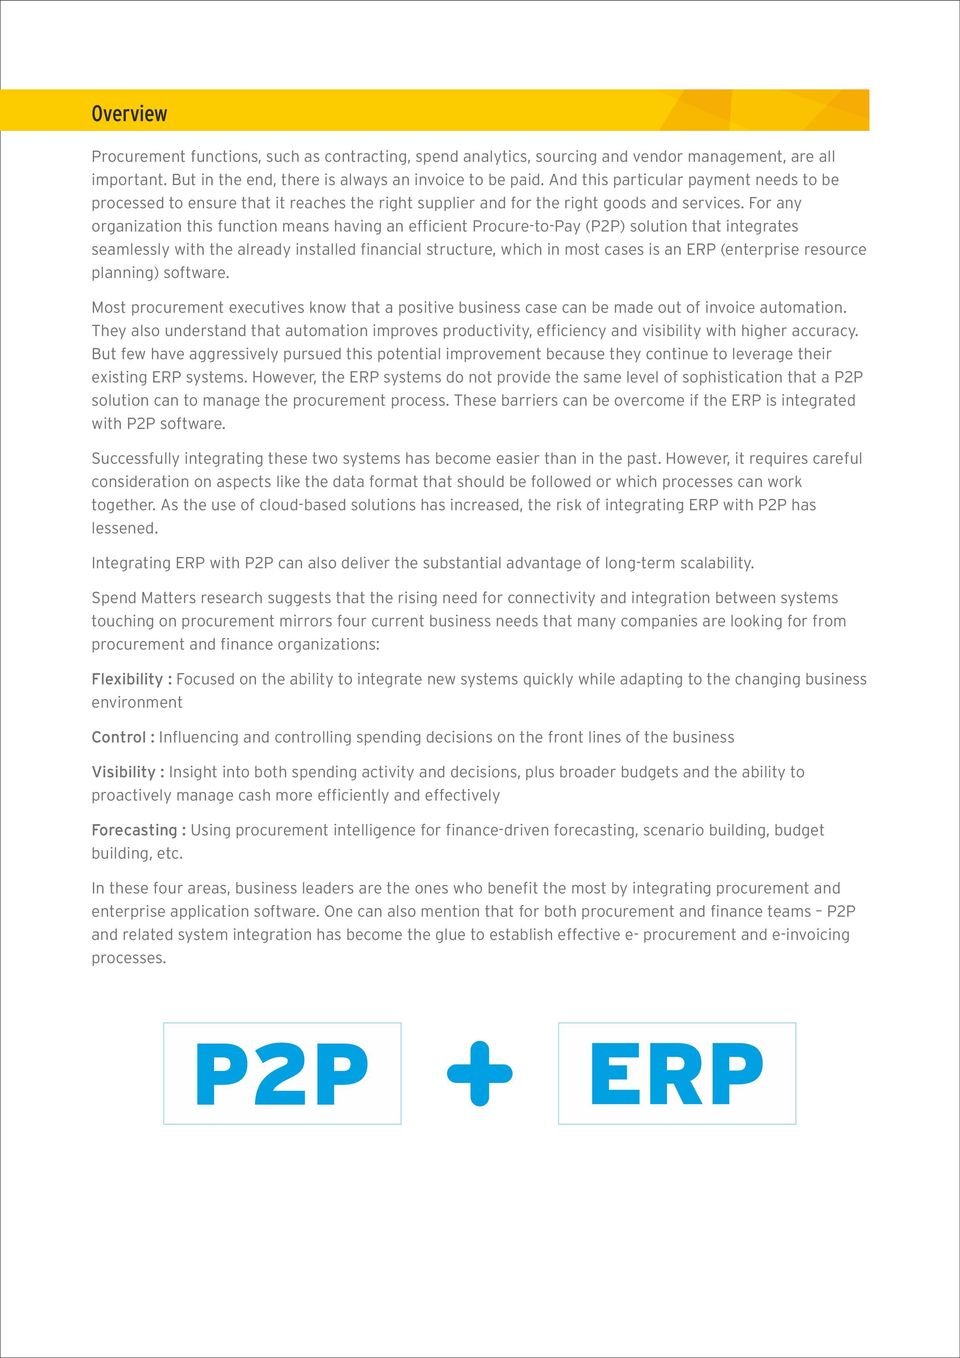 For any organization this function means having an efficient Procure-to-Pay (P2P) solution that integrates seamlessly with the already installed financial structure, which in most cases is an ERP